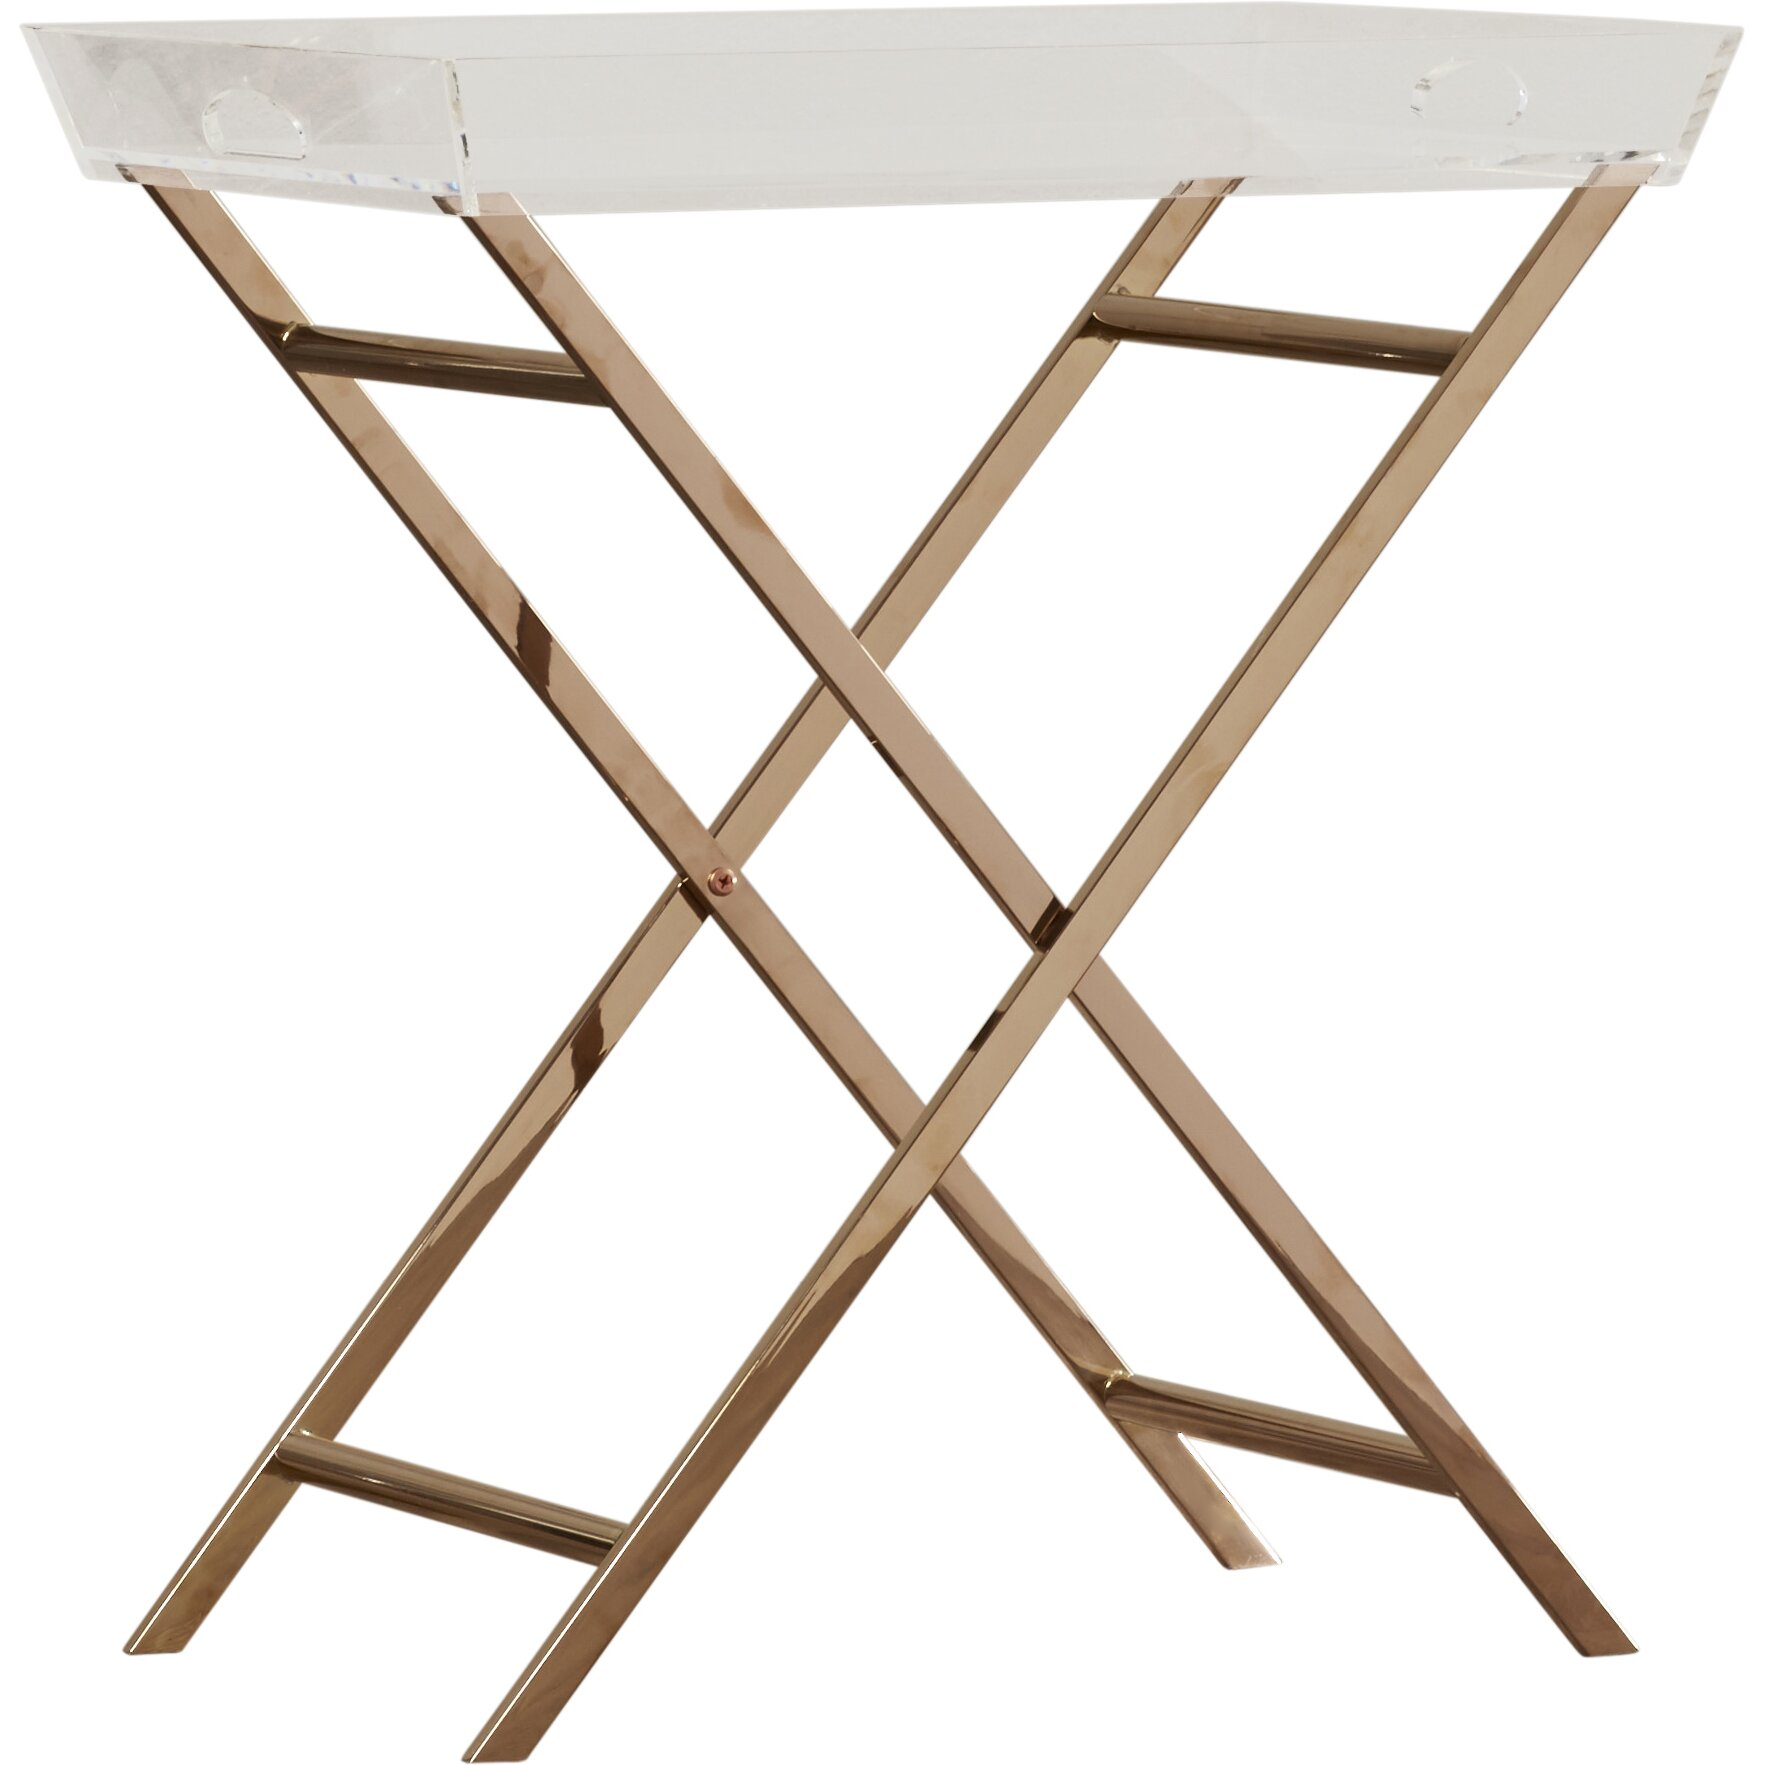 Mercer41 Fort Pierce Acrylic Tray Table Amp Reviews Wayfair